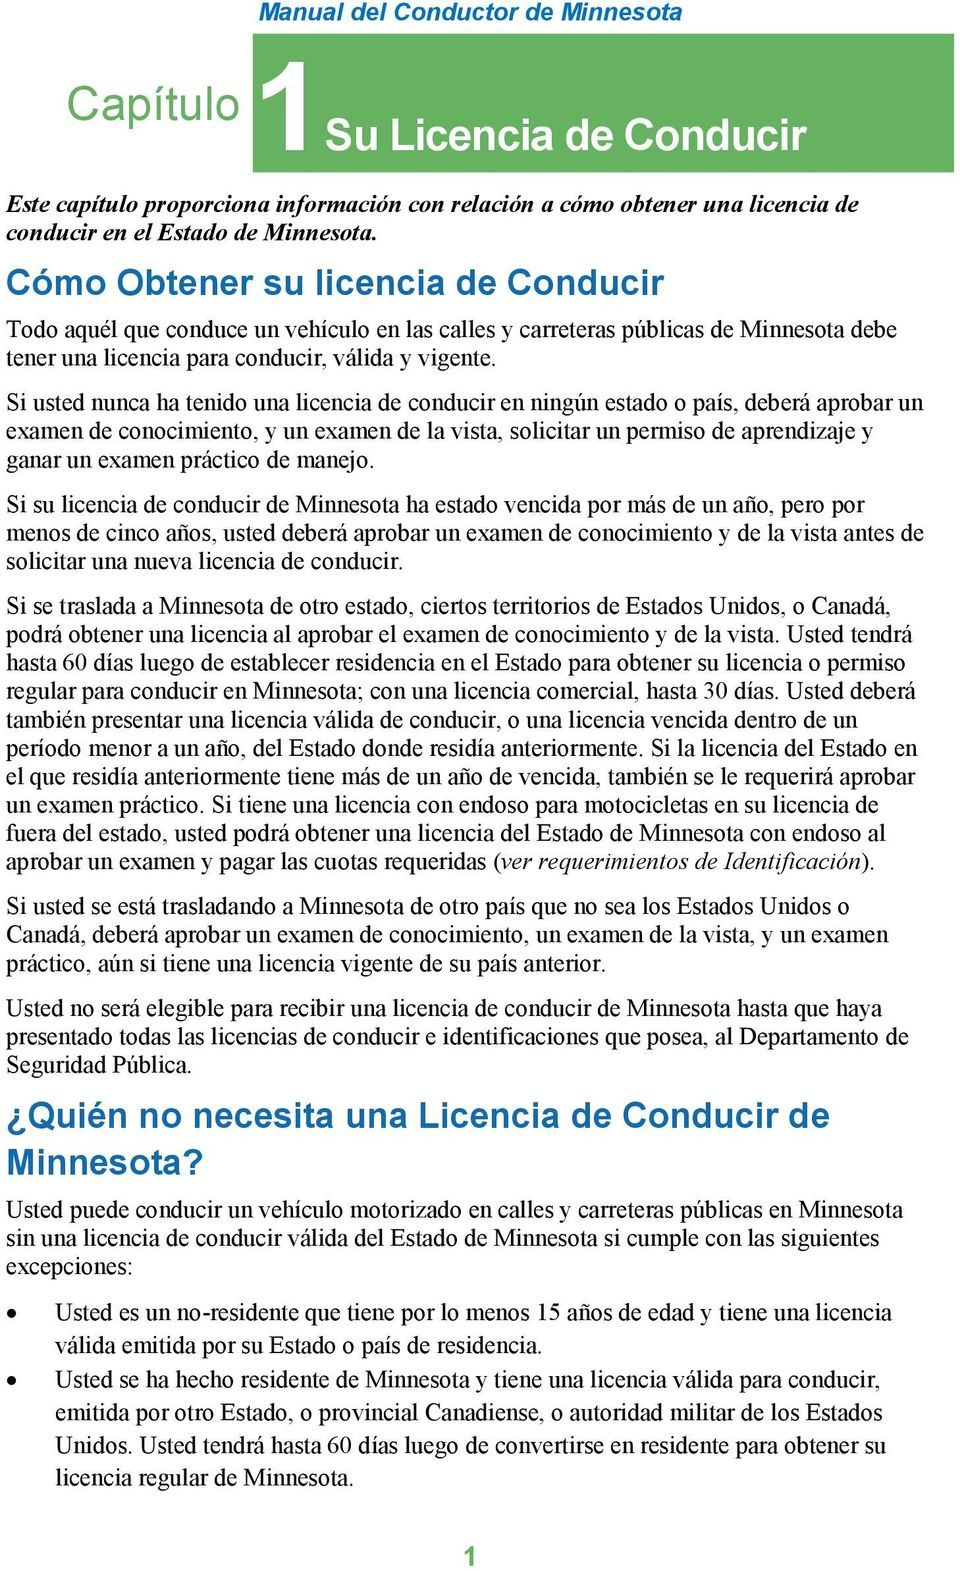 Manual del Conductor de Minnesota - PDF